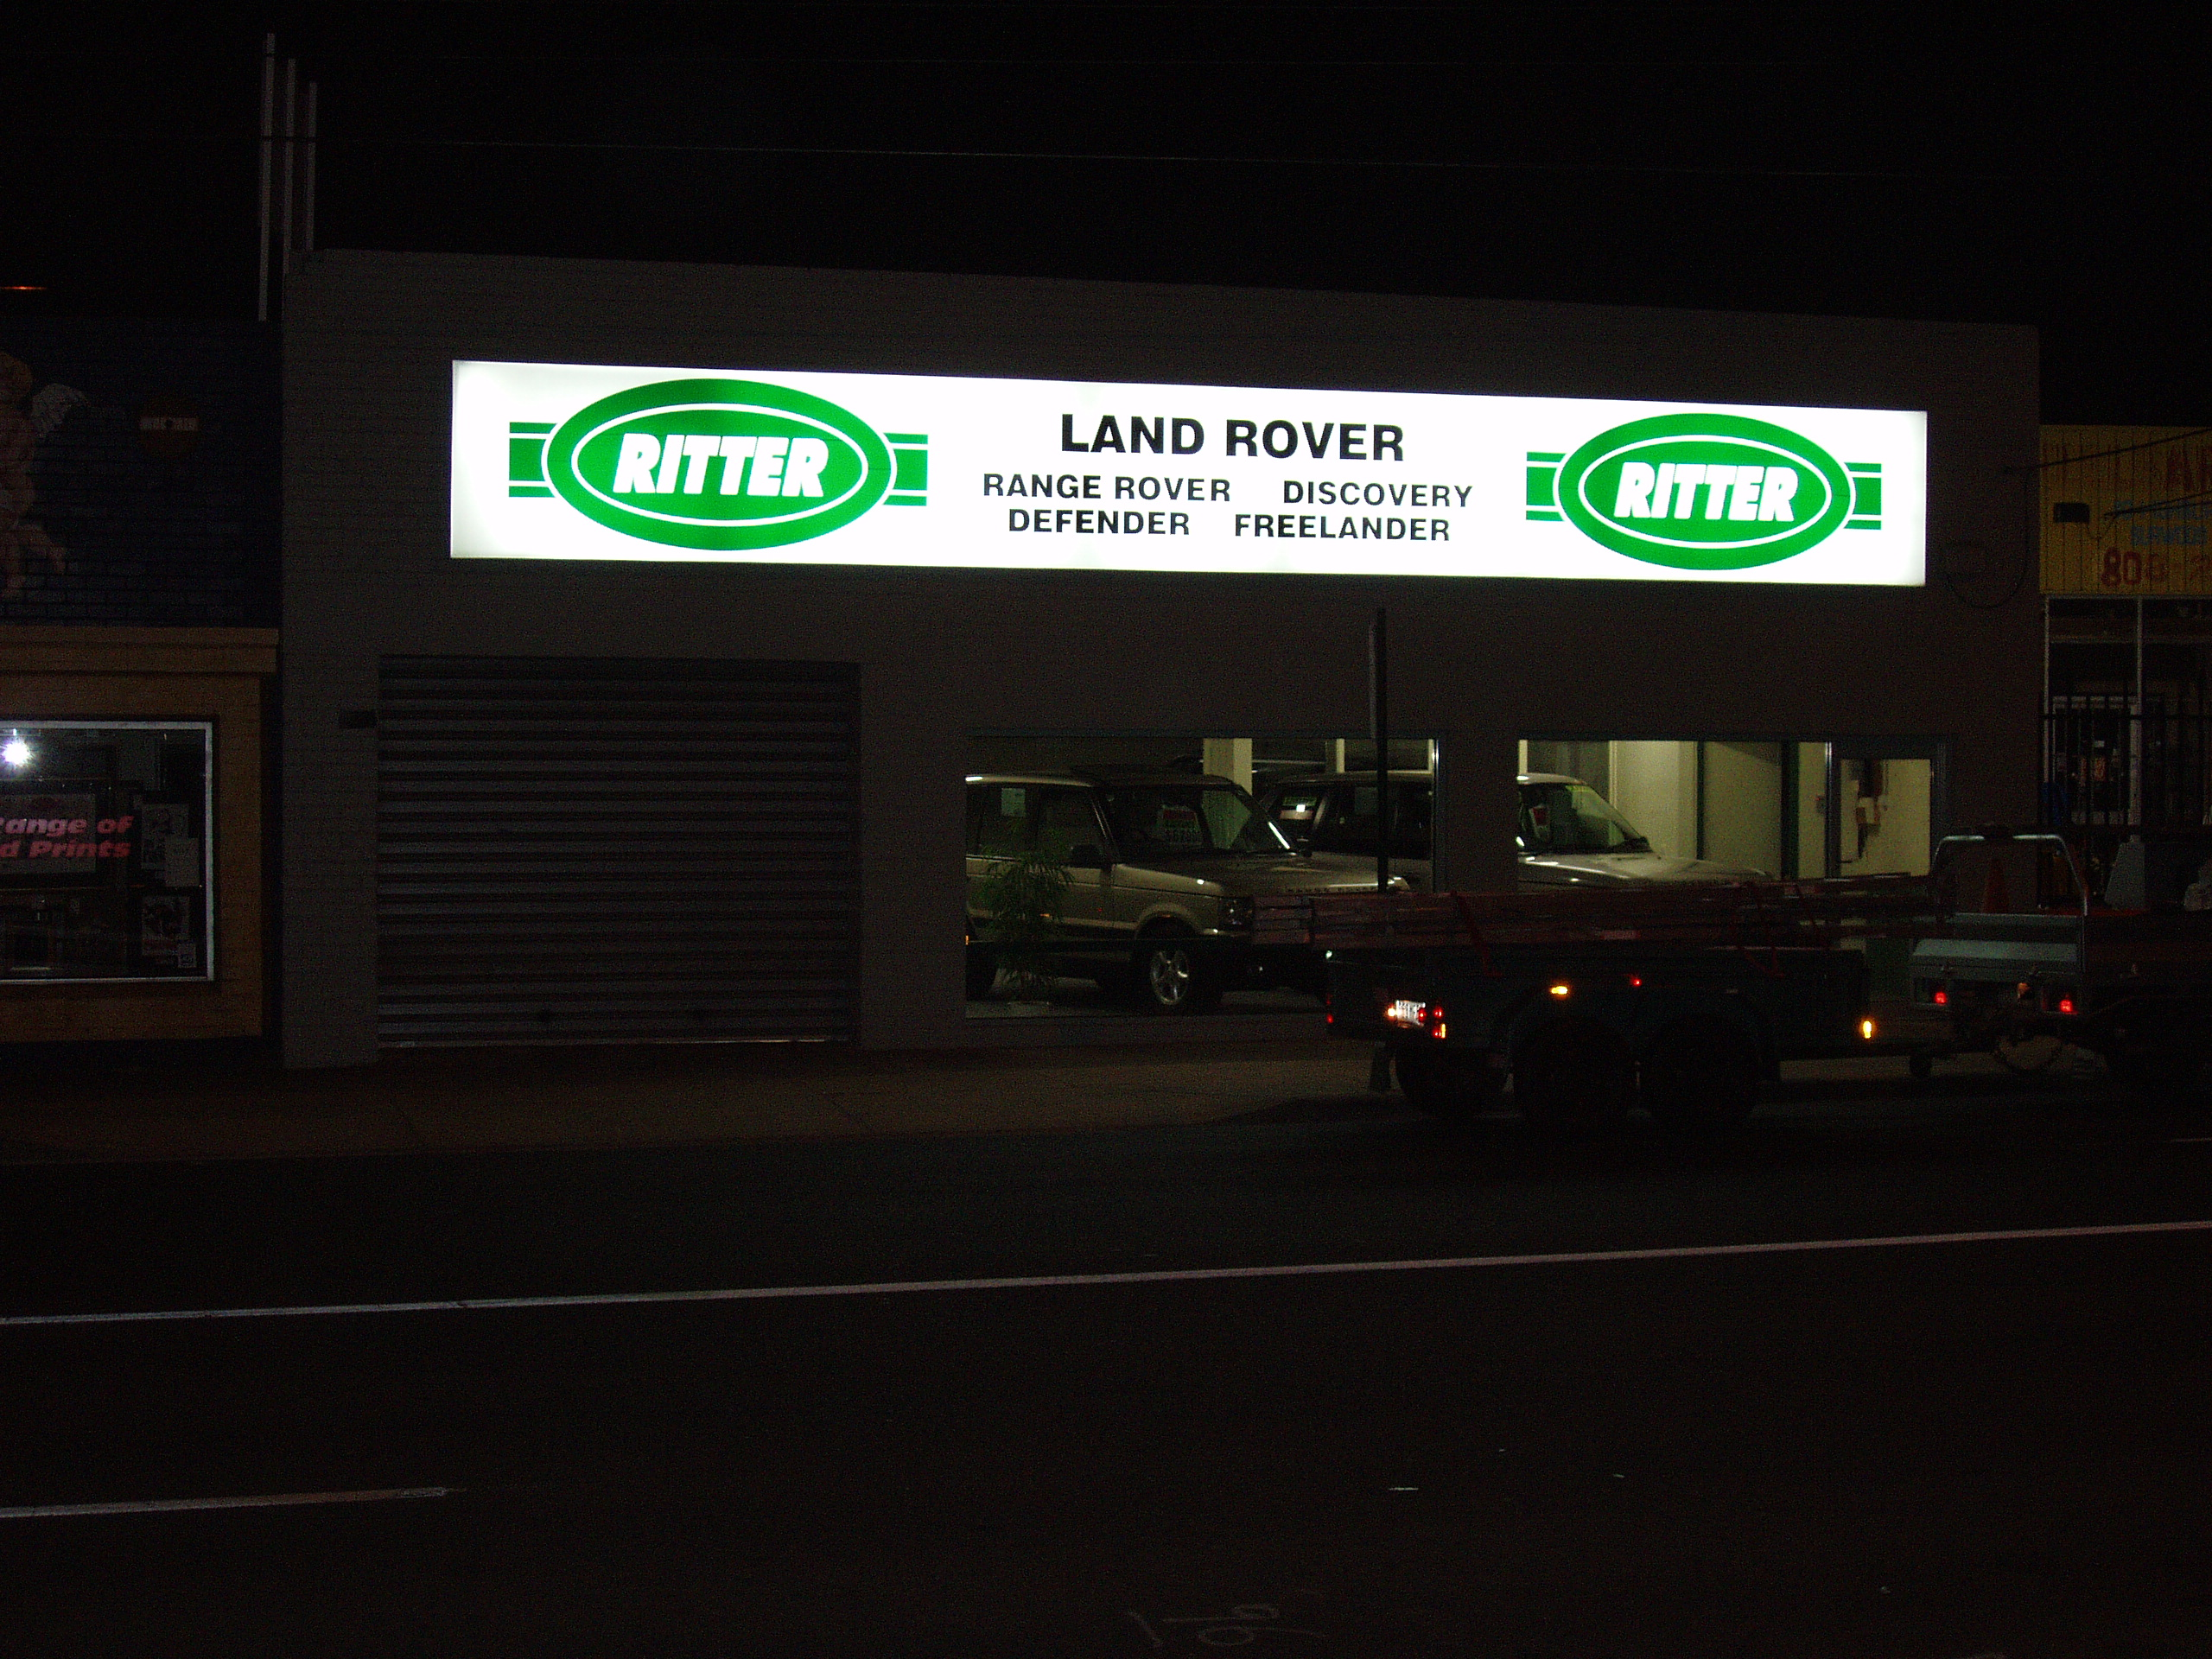 land rover ritter night illuminated signage building signage